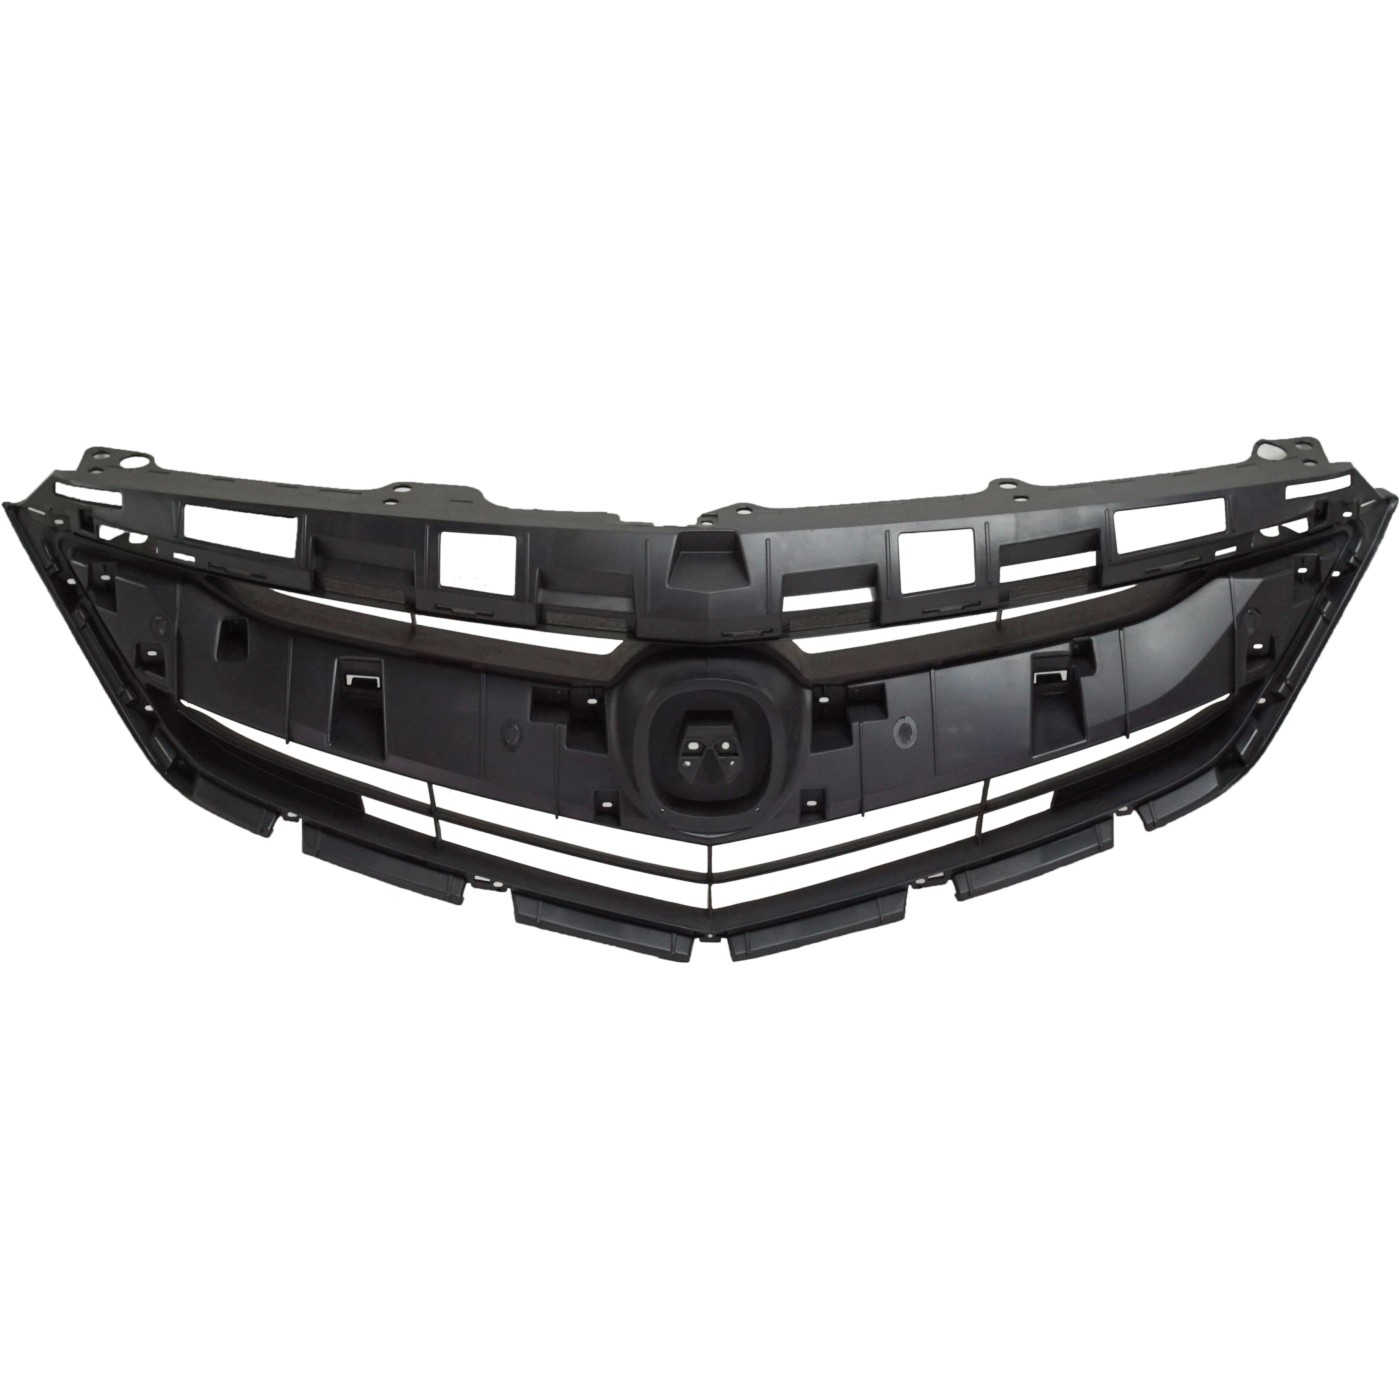 71121TX6A51 New Grille Grill For Acura ILX 2016-2018